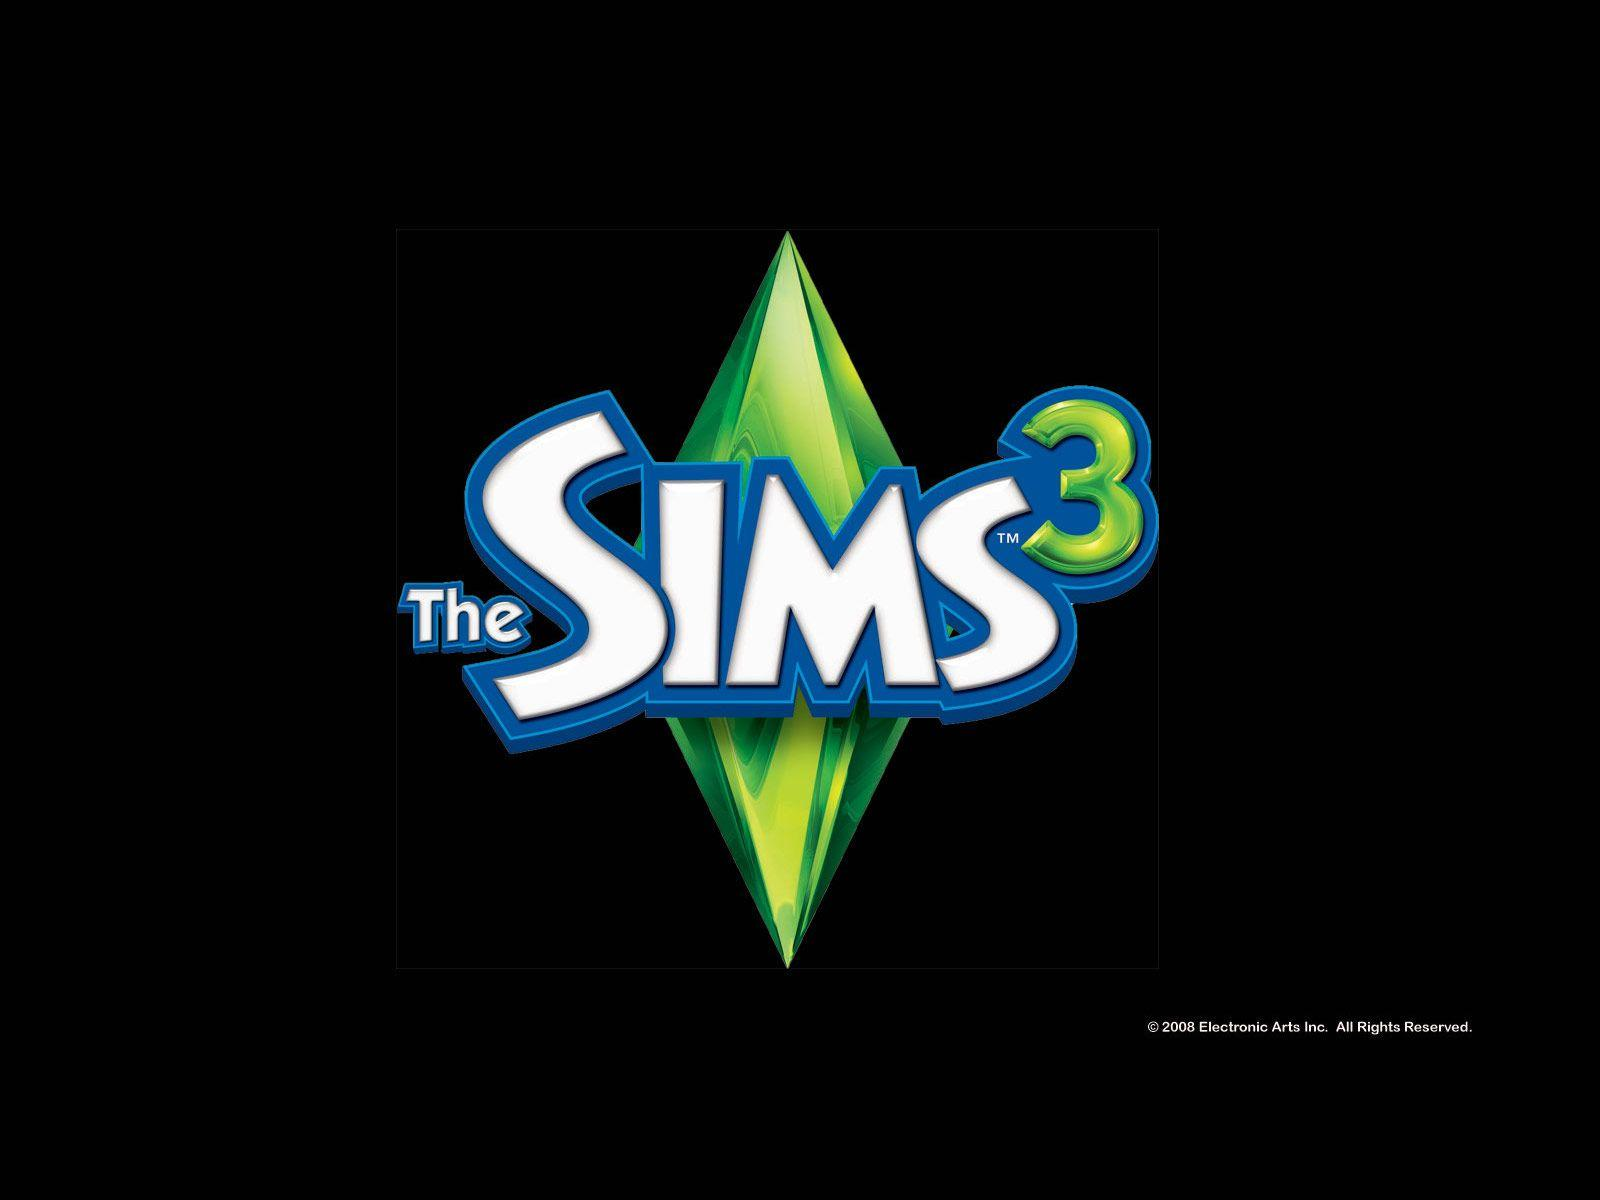 The Sims 3 Game Wallpapers